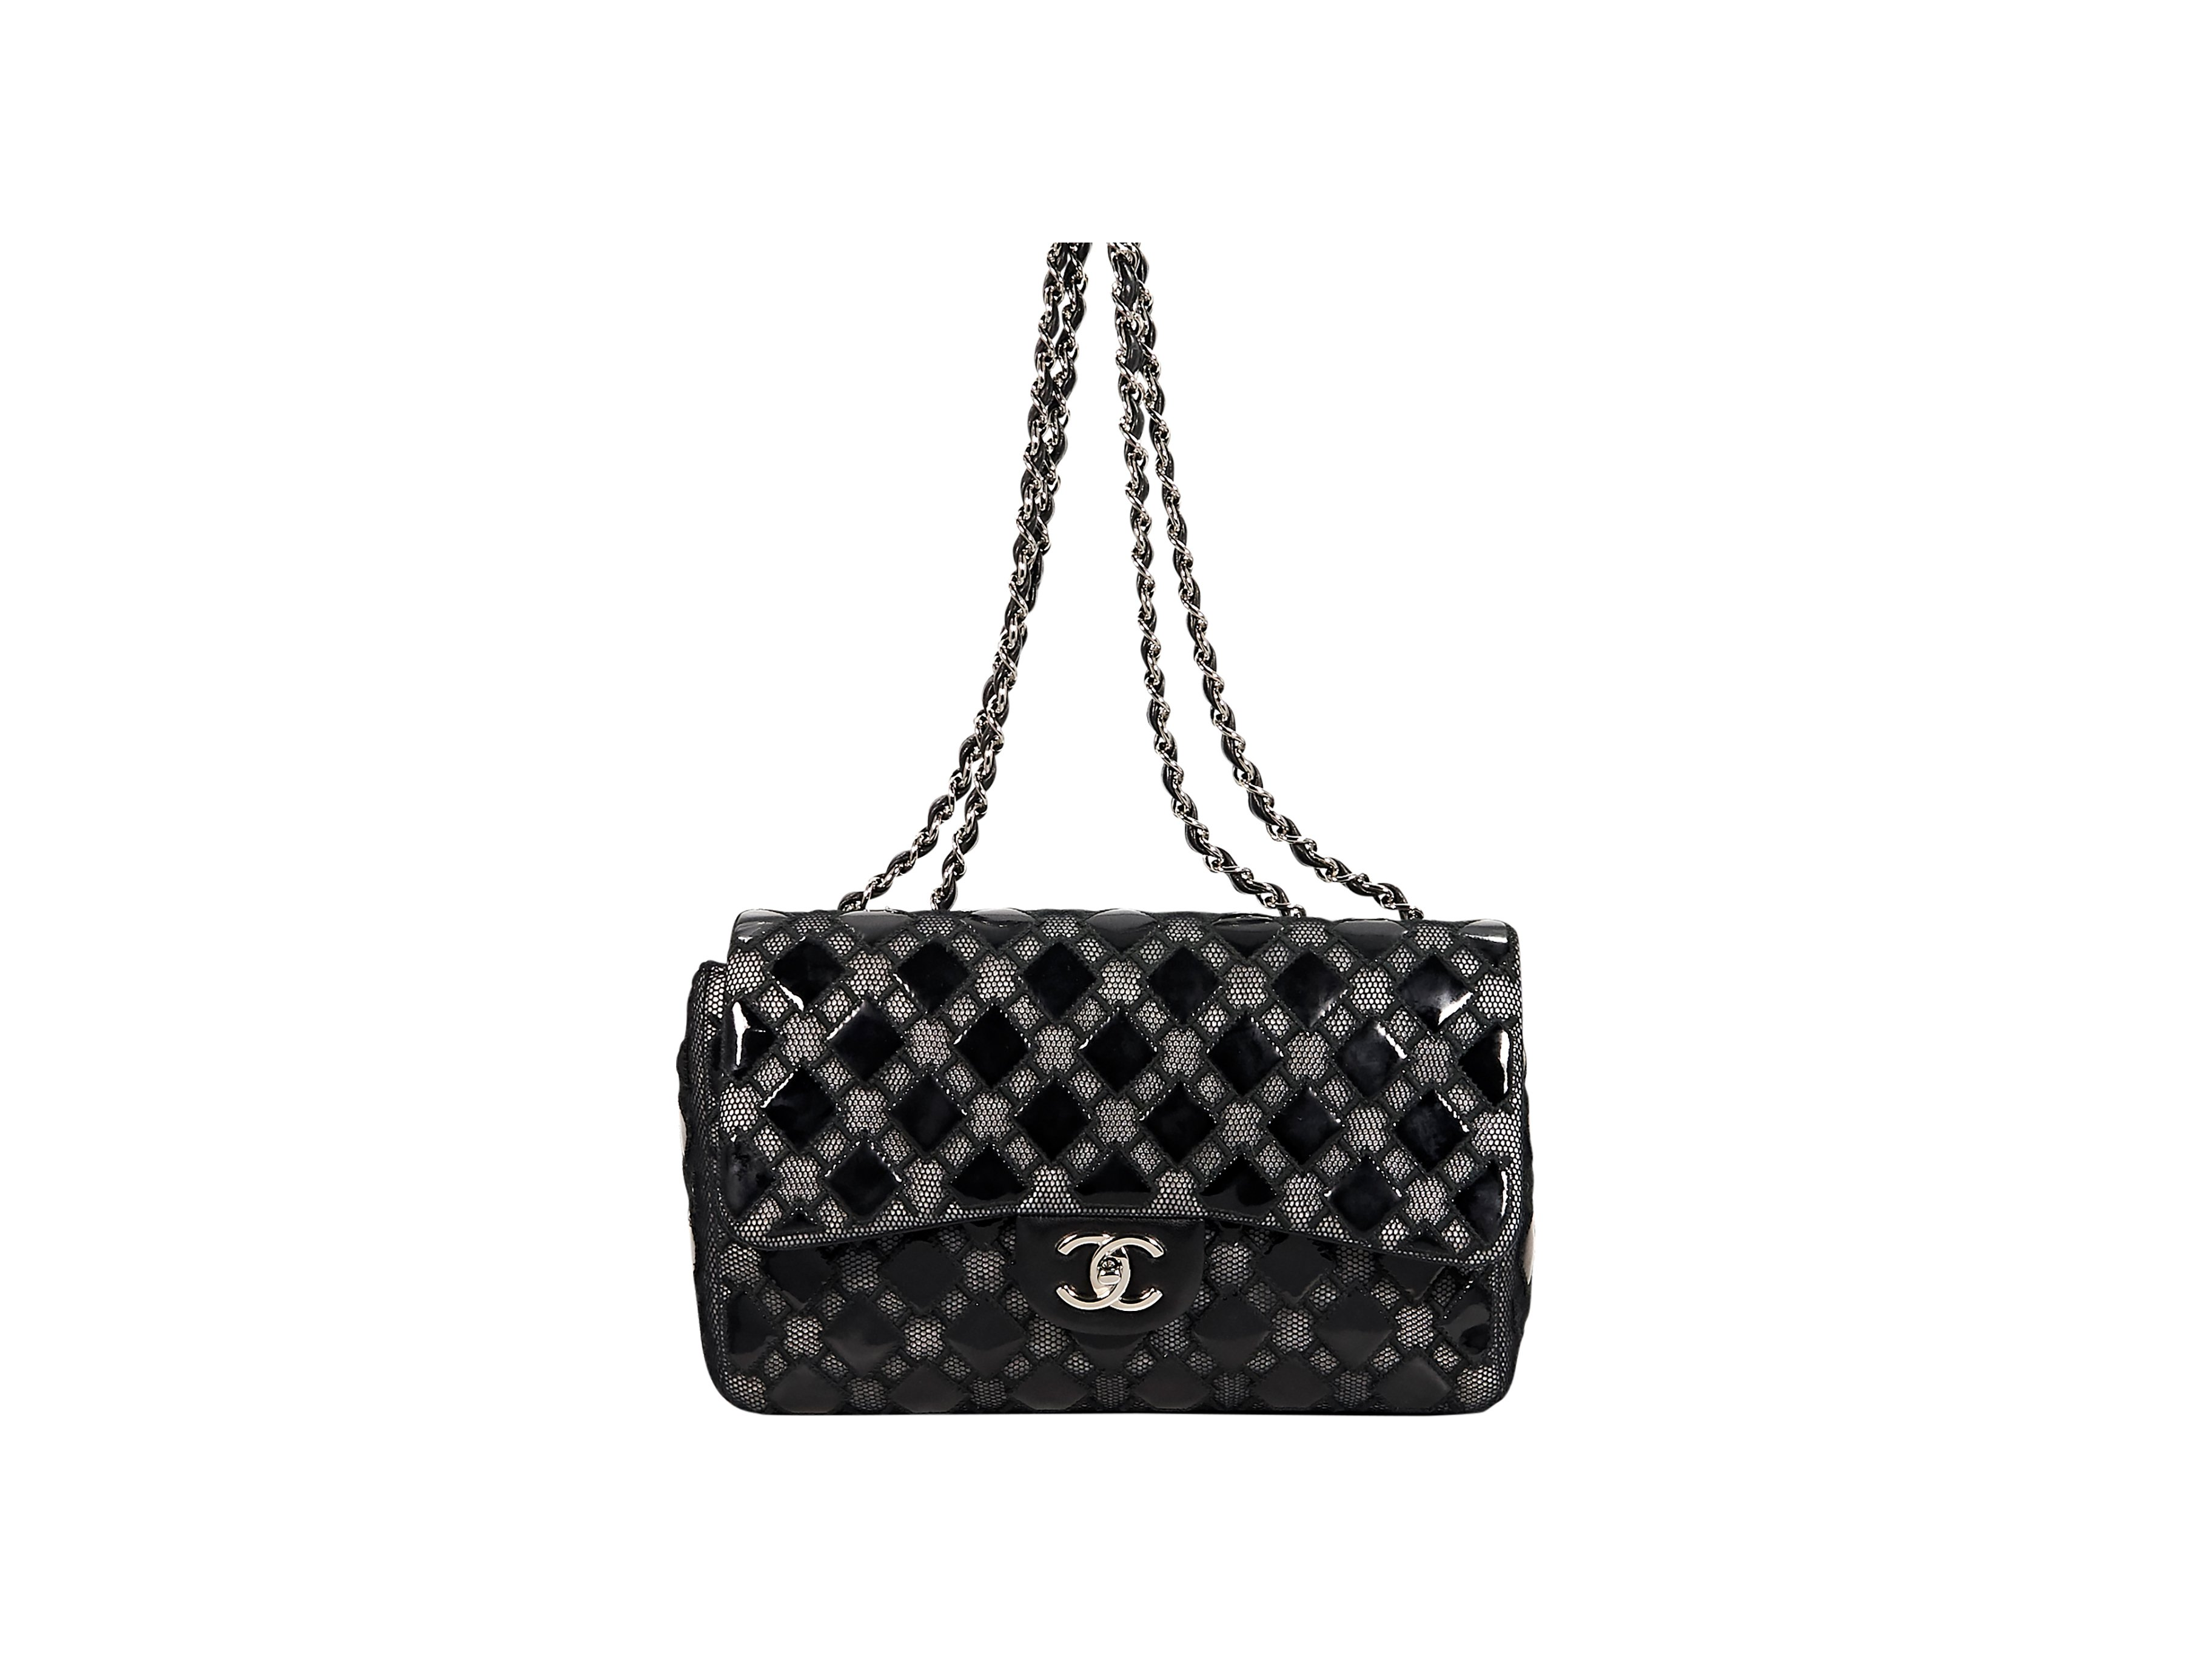 Black Chanel Patent Leather & Mesh Flap Bag